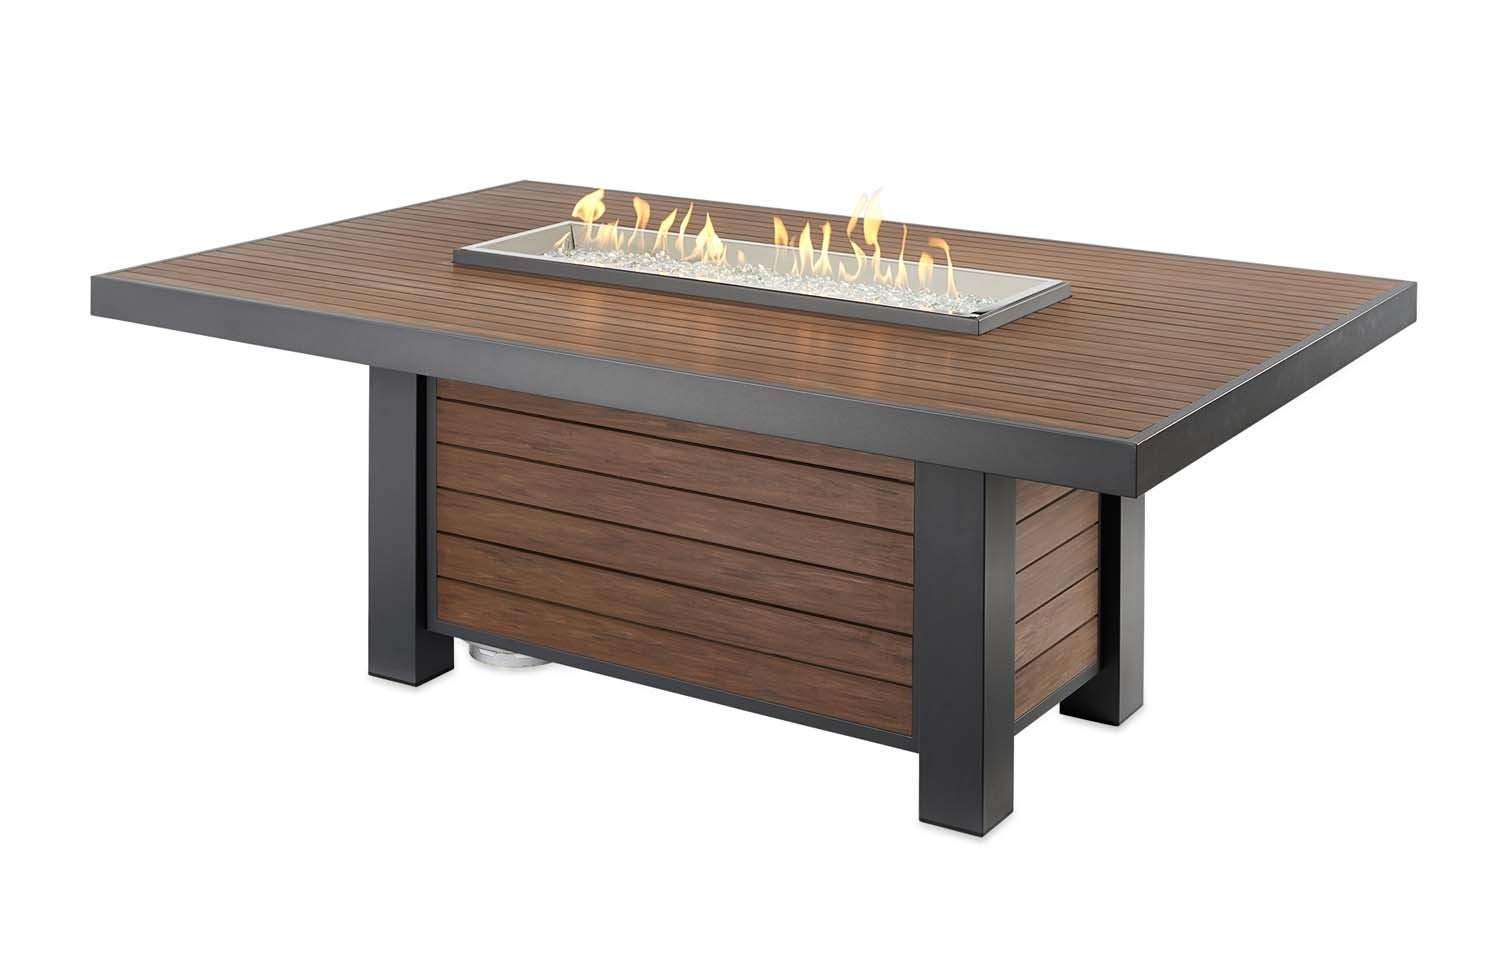 The Outdoor GreatRoom Company Kenwood Linear Dining Height GAS Fire Pit Table (KW-1242-K) with Glass Wind Guard (1242) by The Outdoor GreatRoom Company